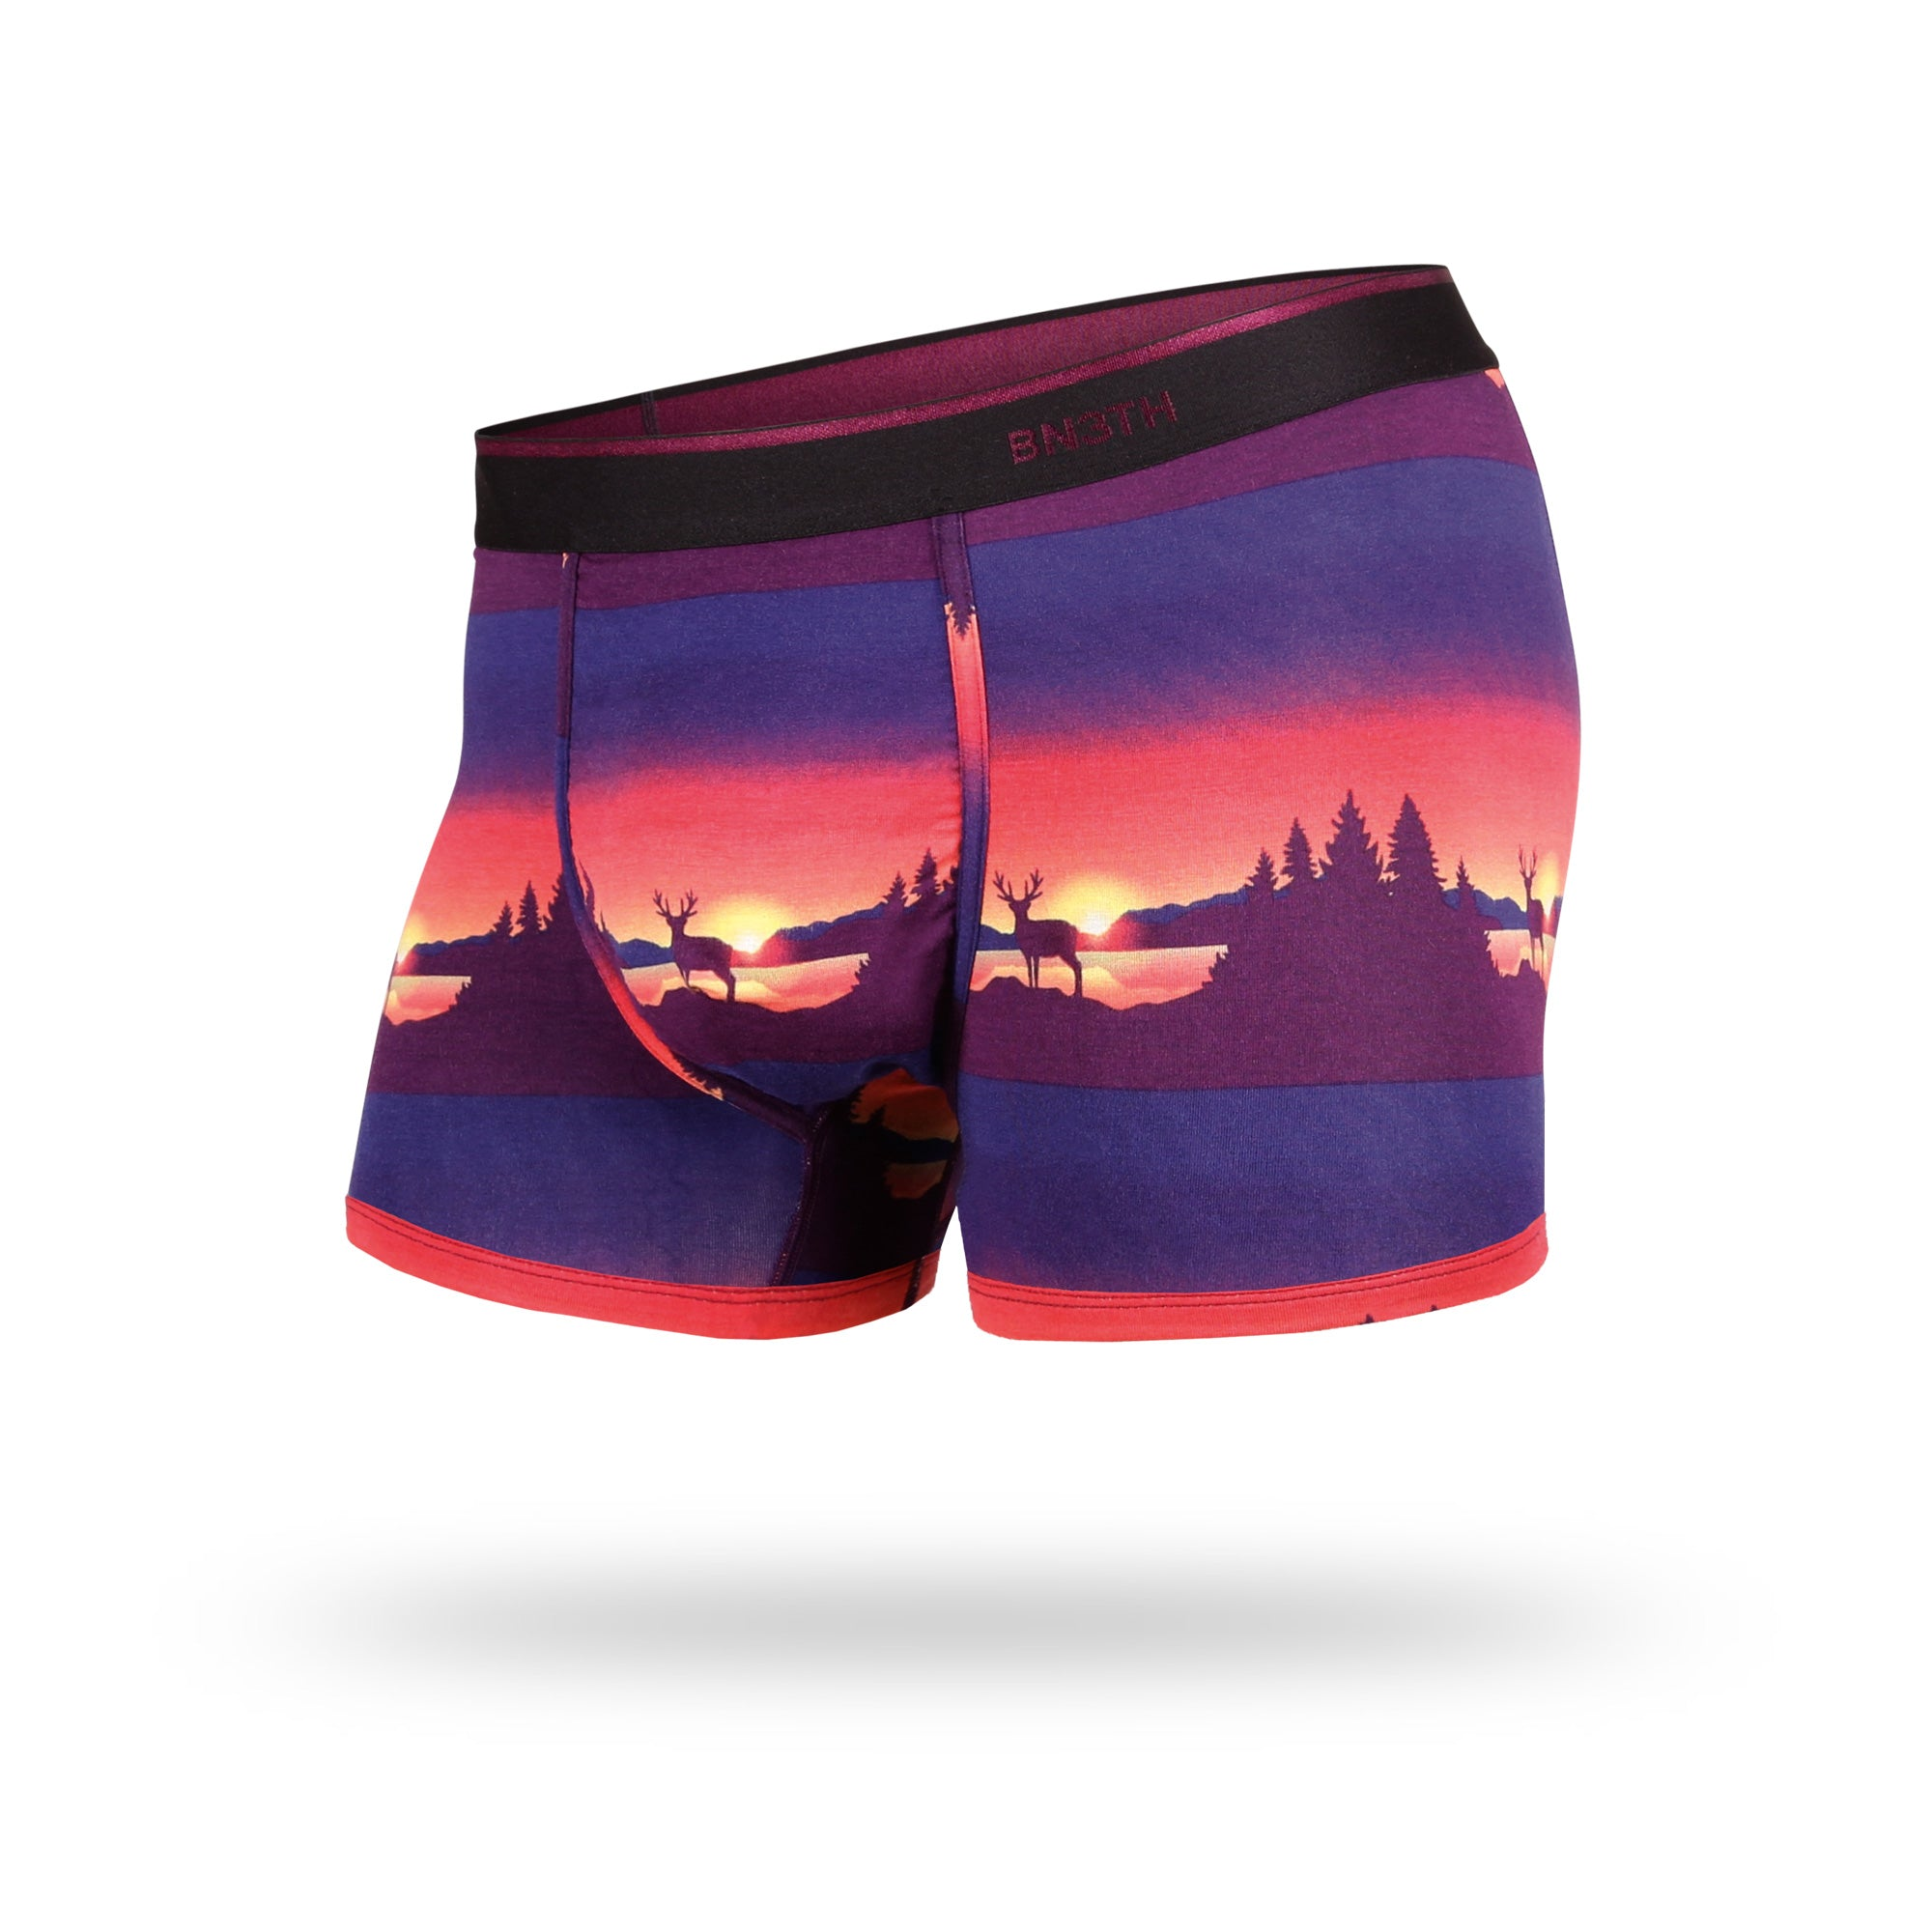 Boxer court Bn3th classic print sea to sky